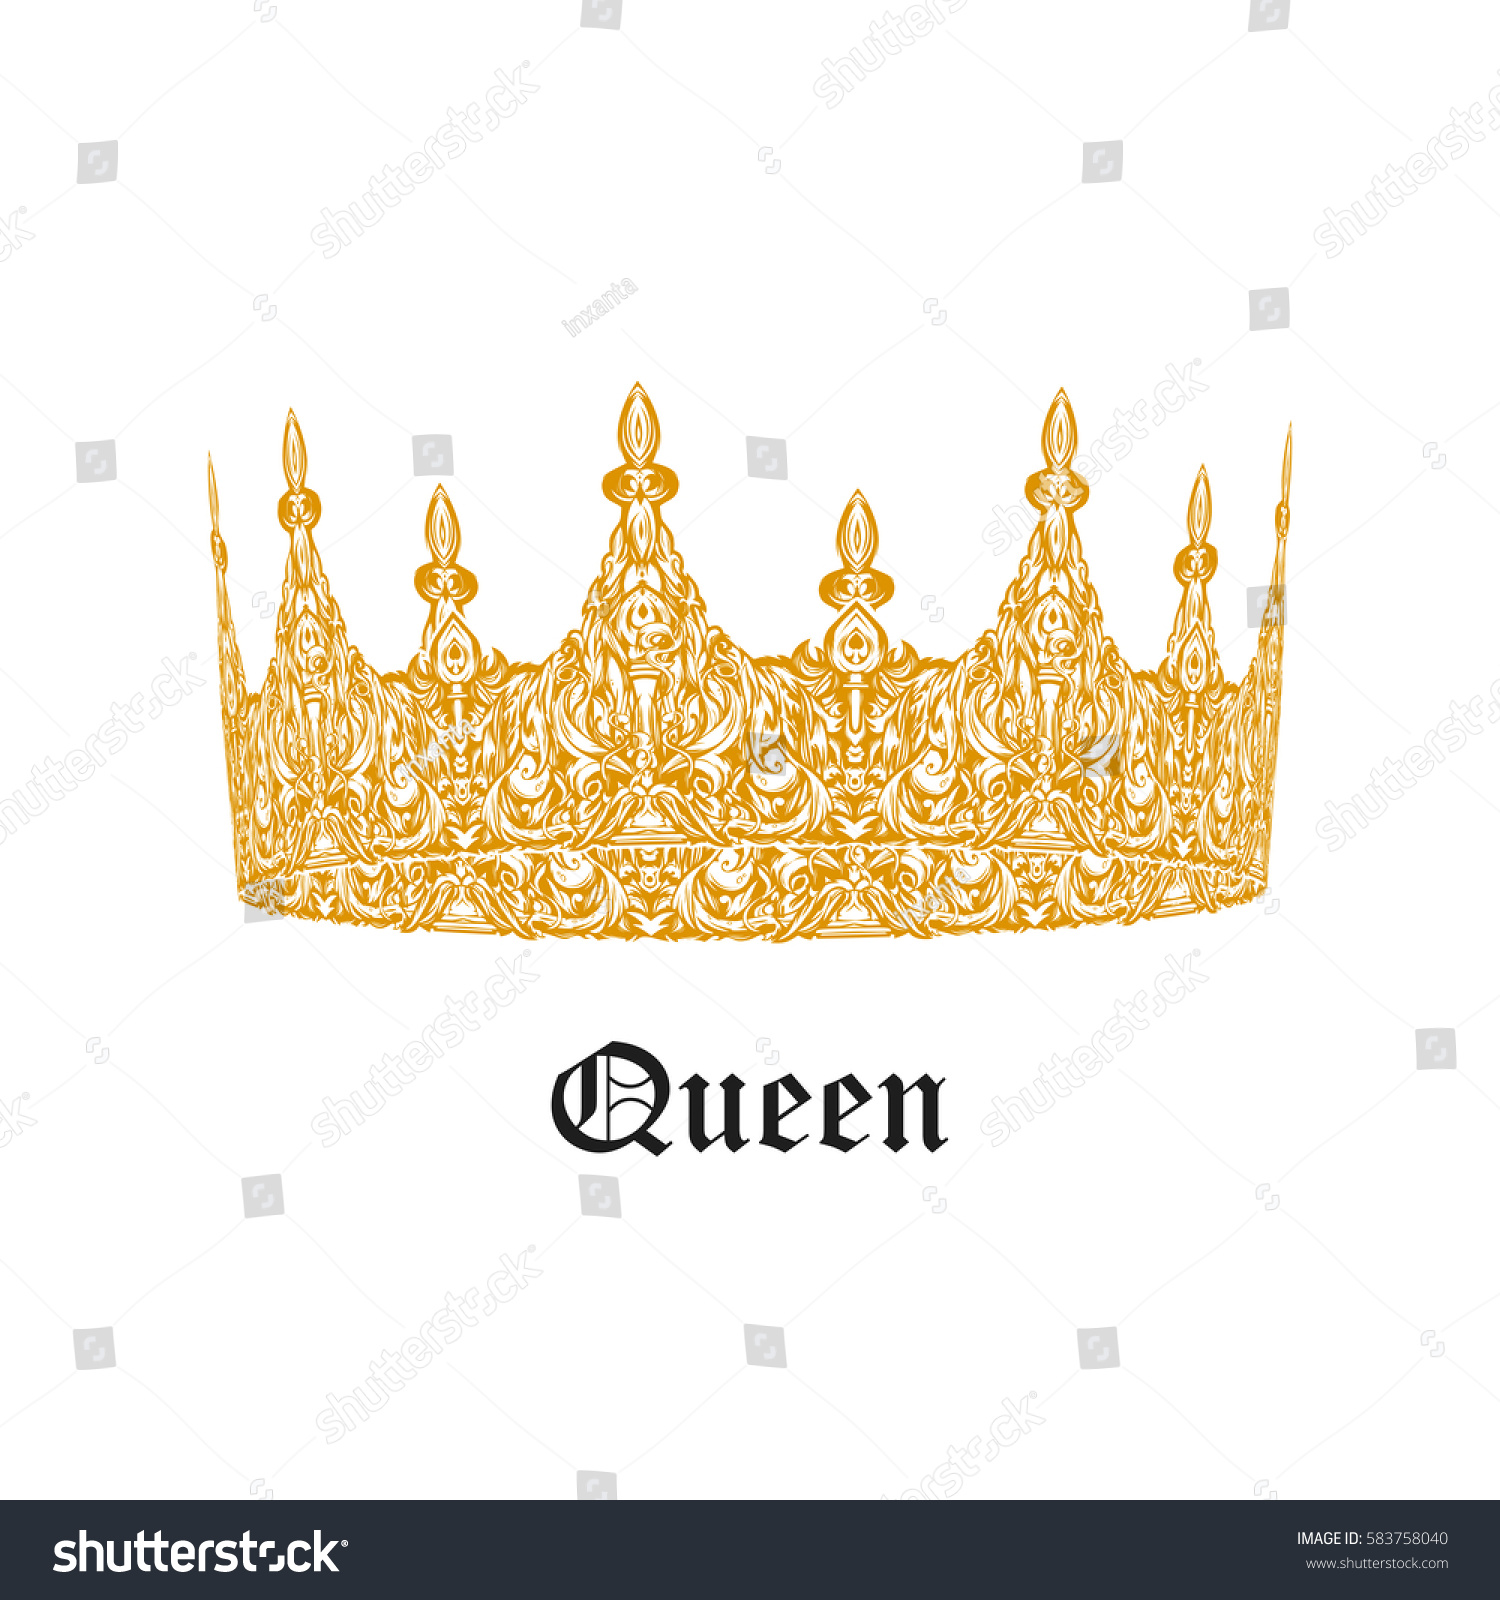 Beautiful gold vintage crown patterned old stock vector 583758040 beautiful gold vintage crown patterned old element symbol of power royal attribute biocorpaavc Gallery